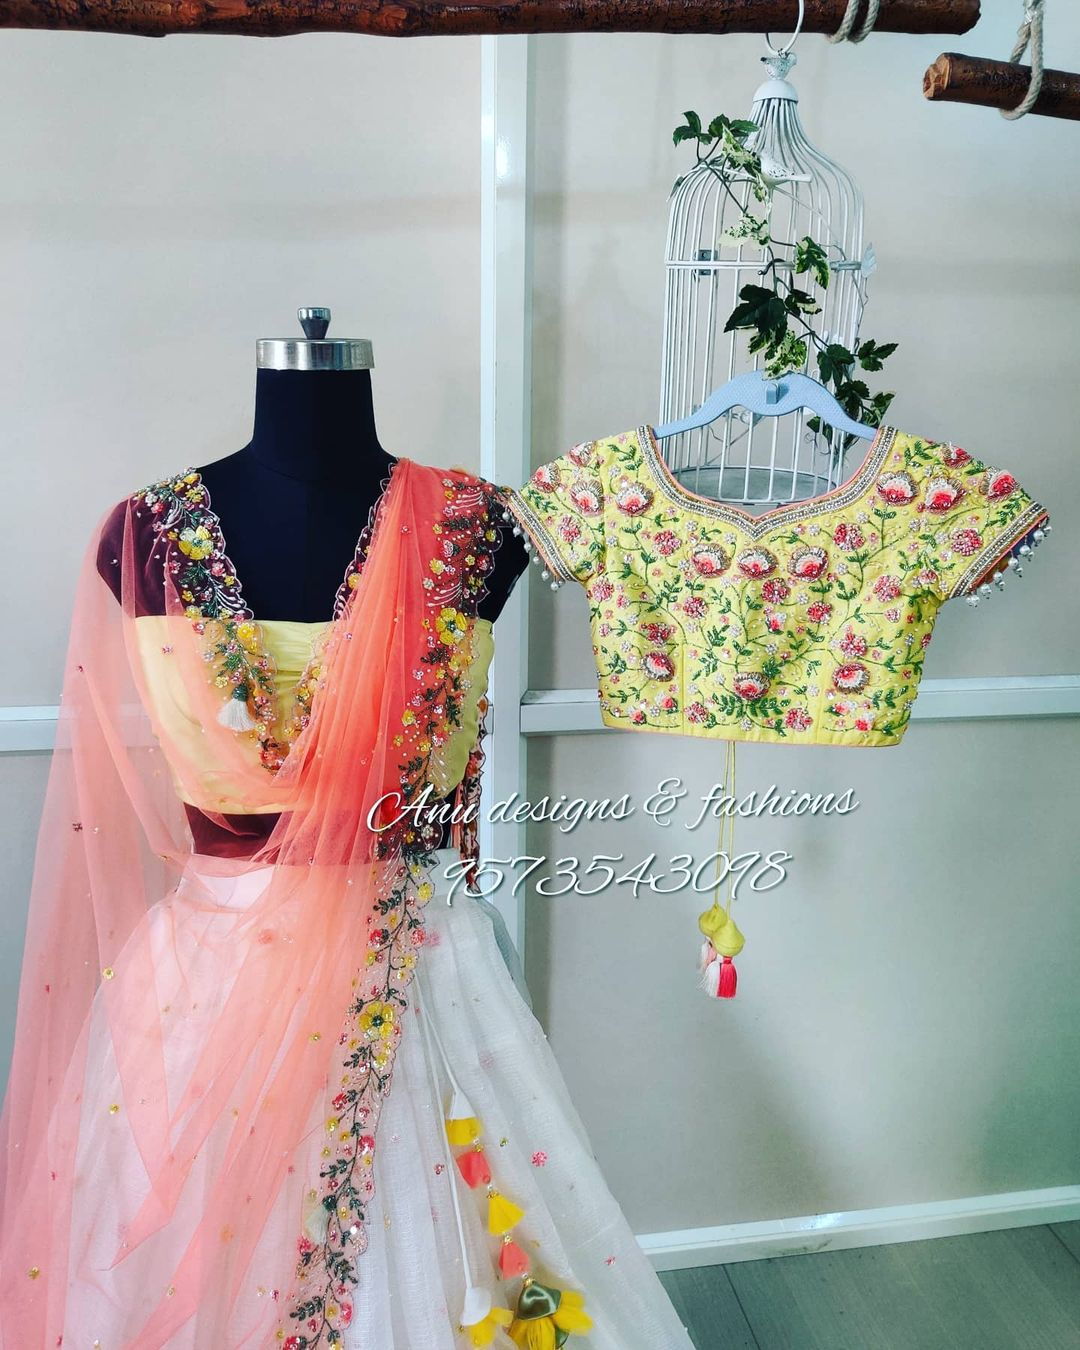 Stunning pearl white color skirt and lime yellow color crop top with net dupatta. Blouse and dupatta with 3D floral hand embroidery maggam work. Full set with dupatta cost is Rs.35 000/- includes fabric embroidery and stitching. 2021-03-04